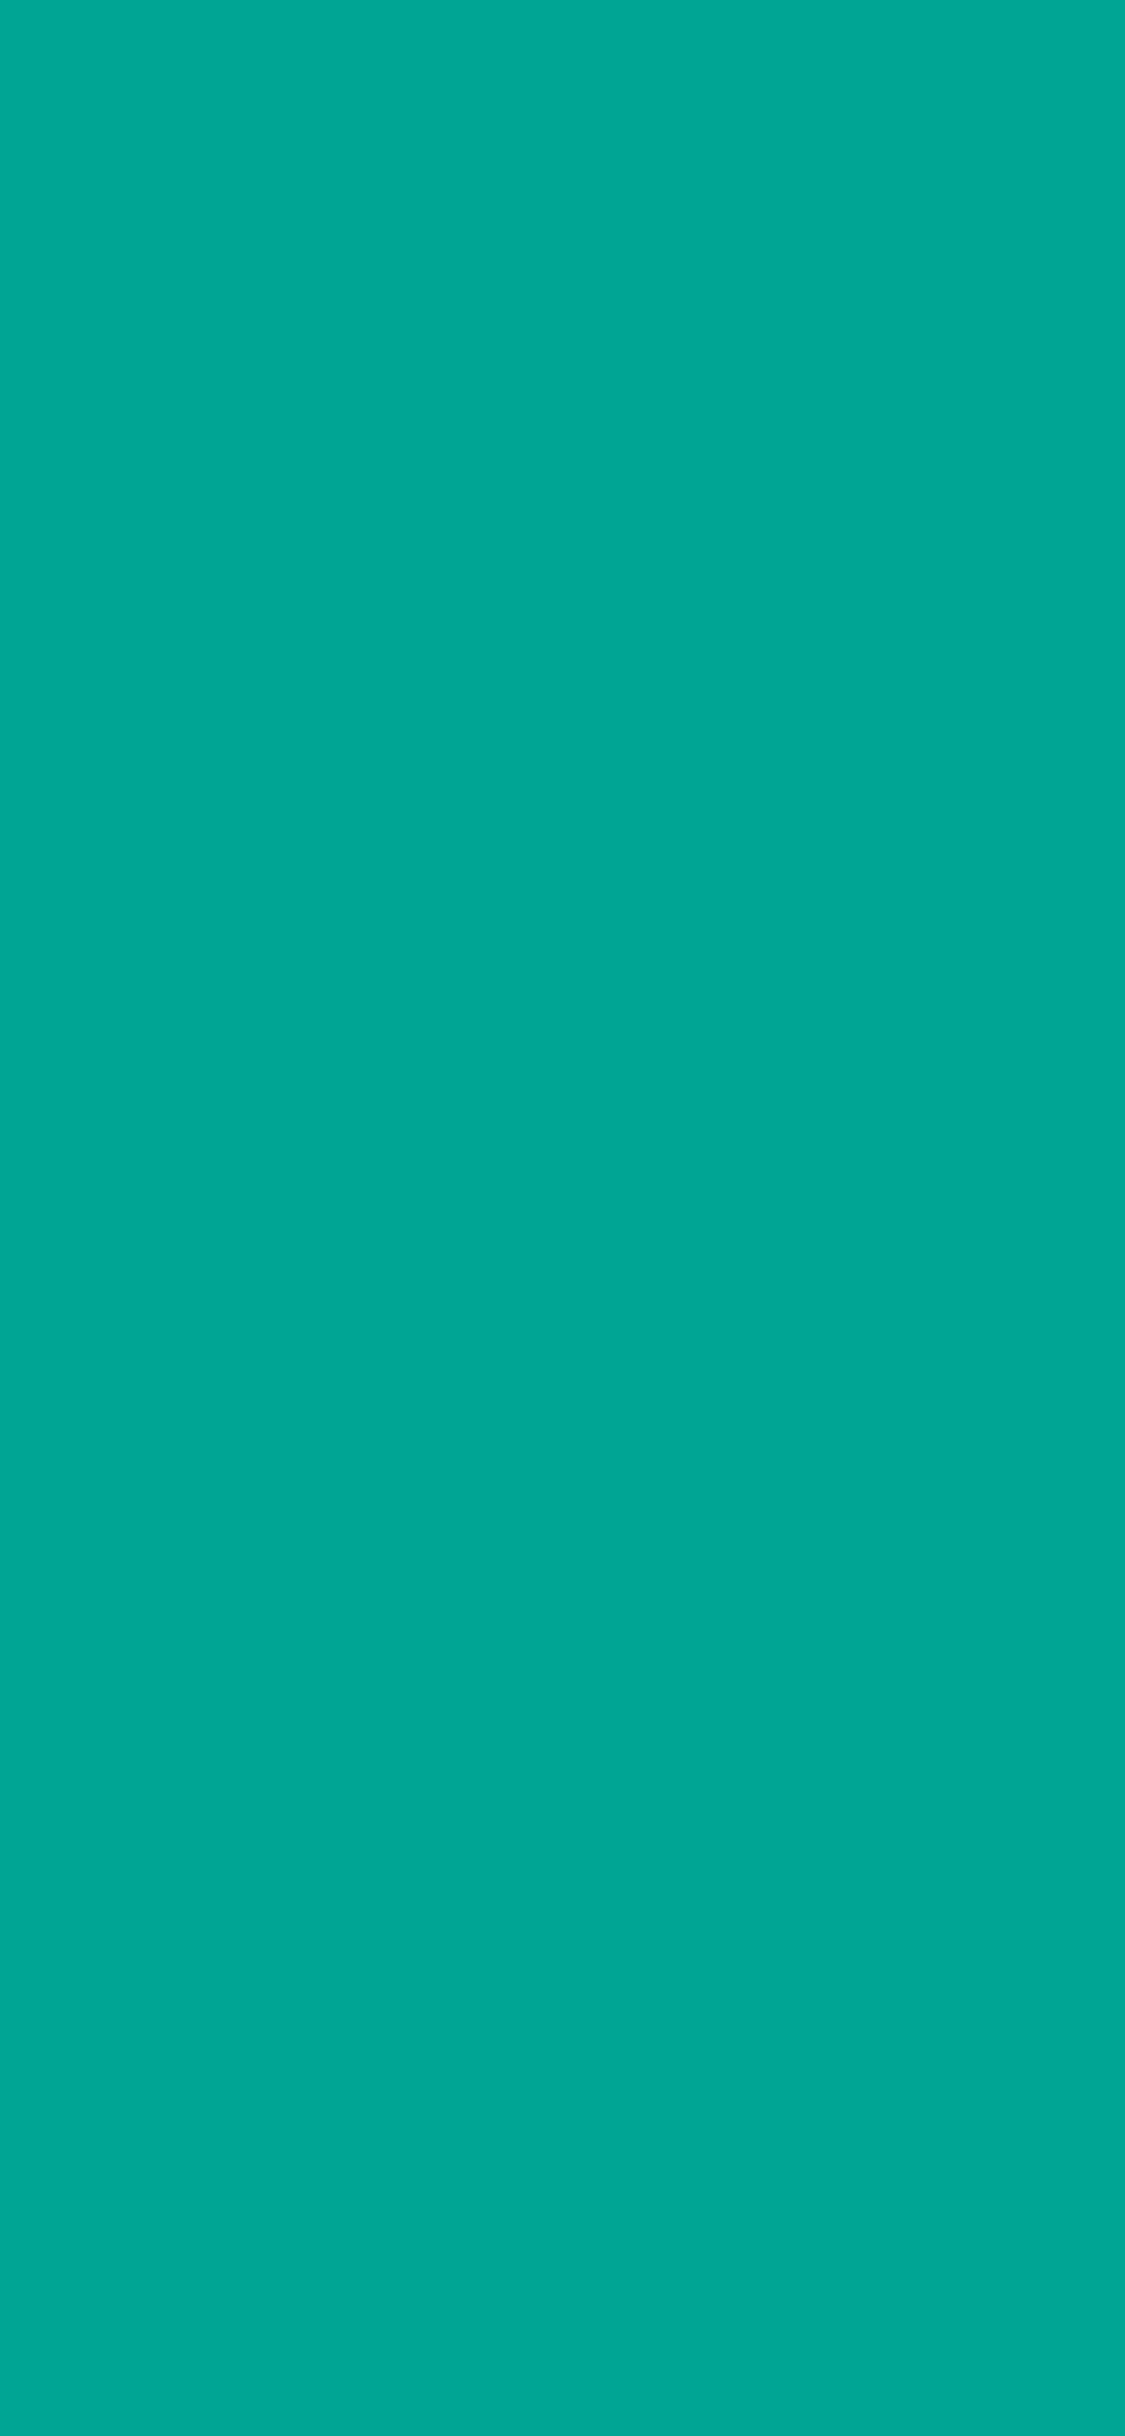 1125x2436 Persian Green Solid Color Background